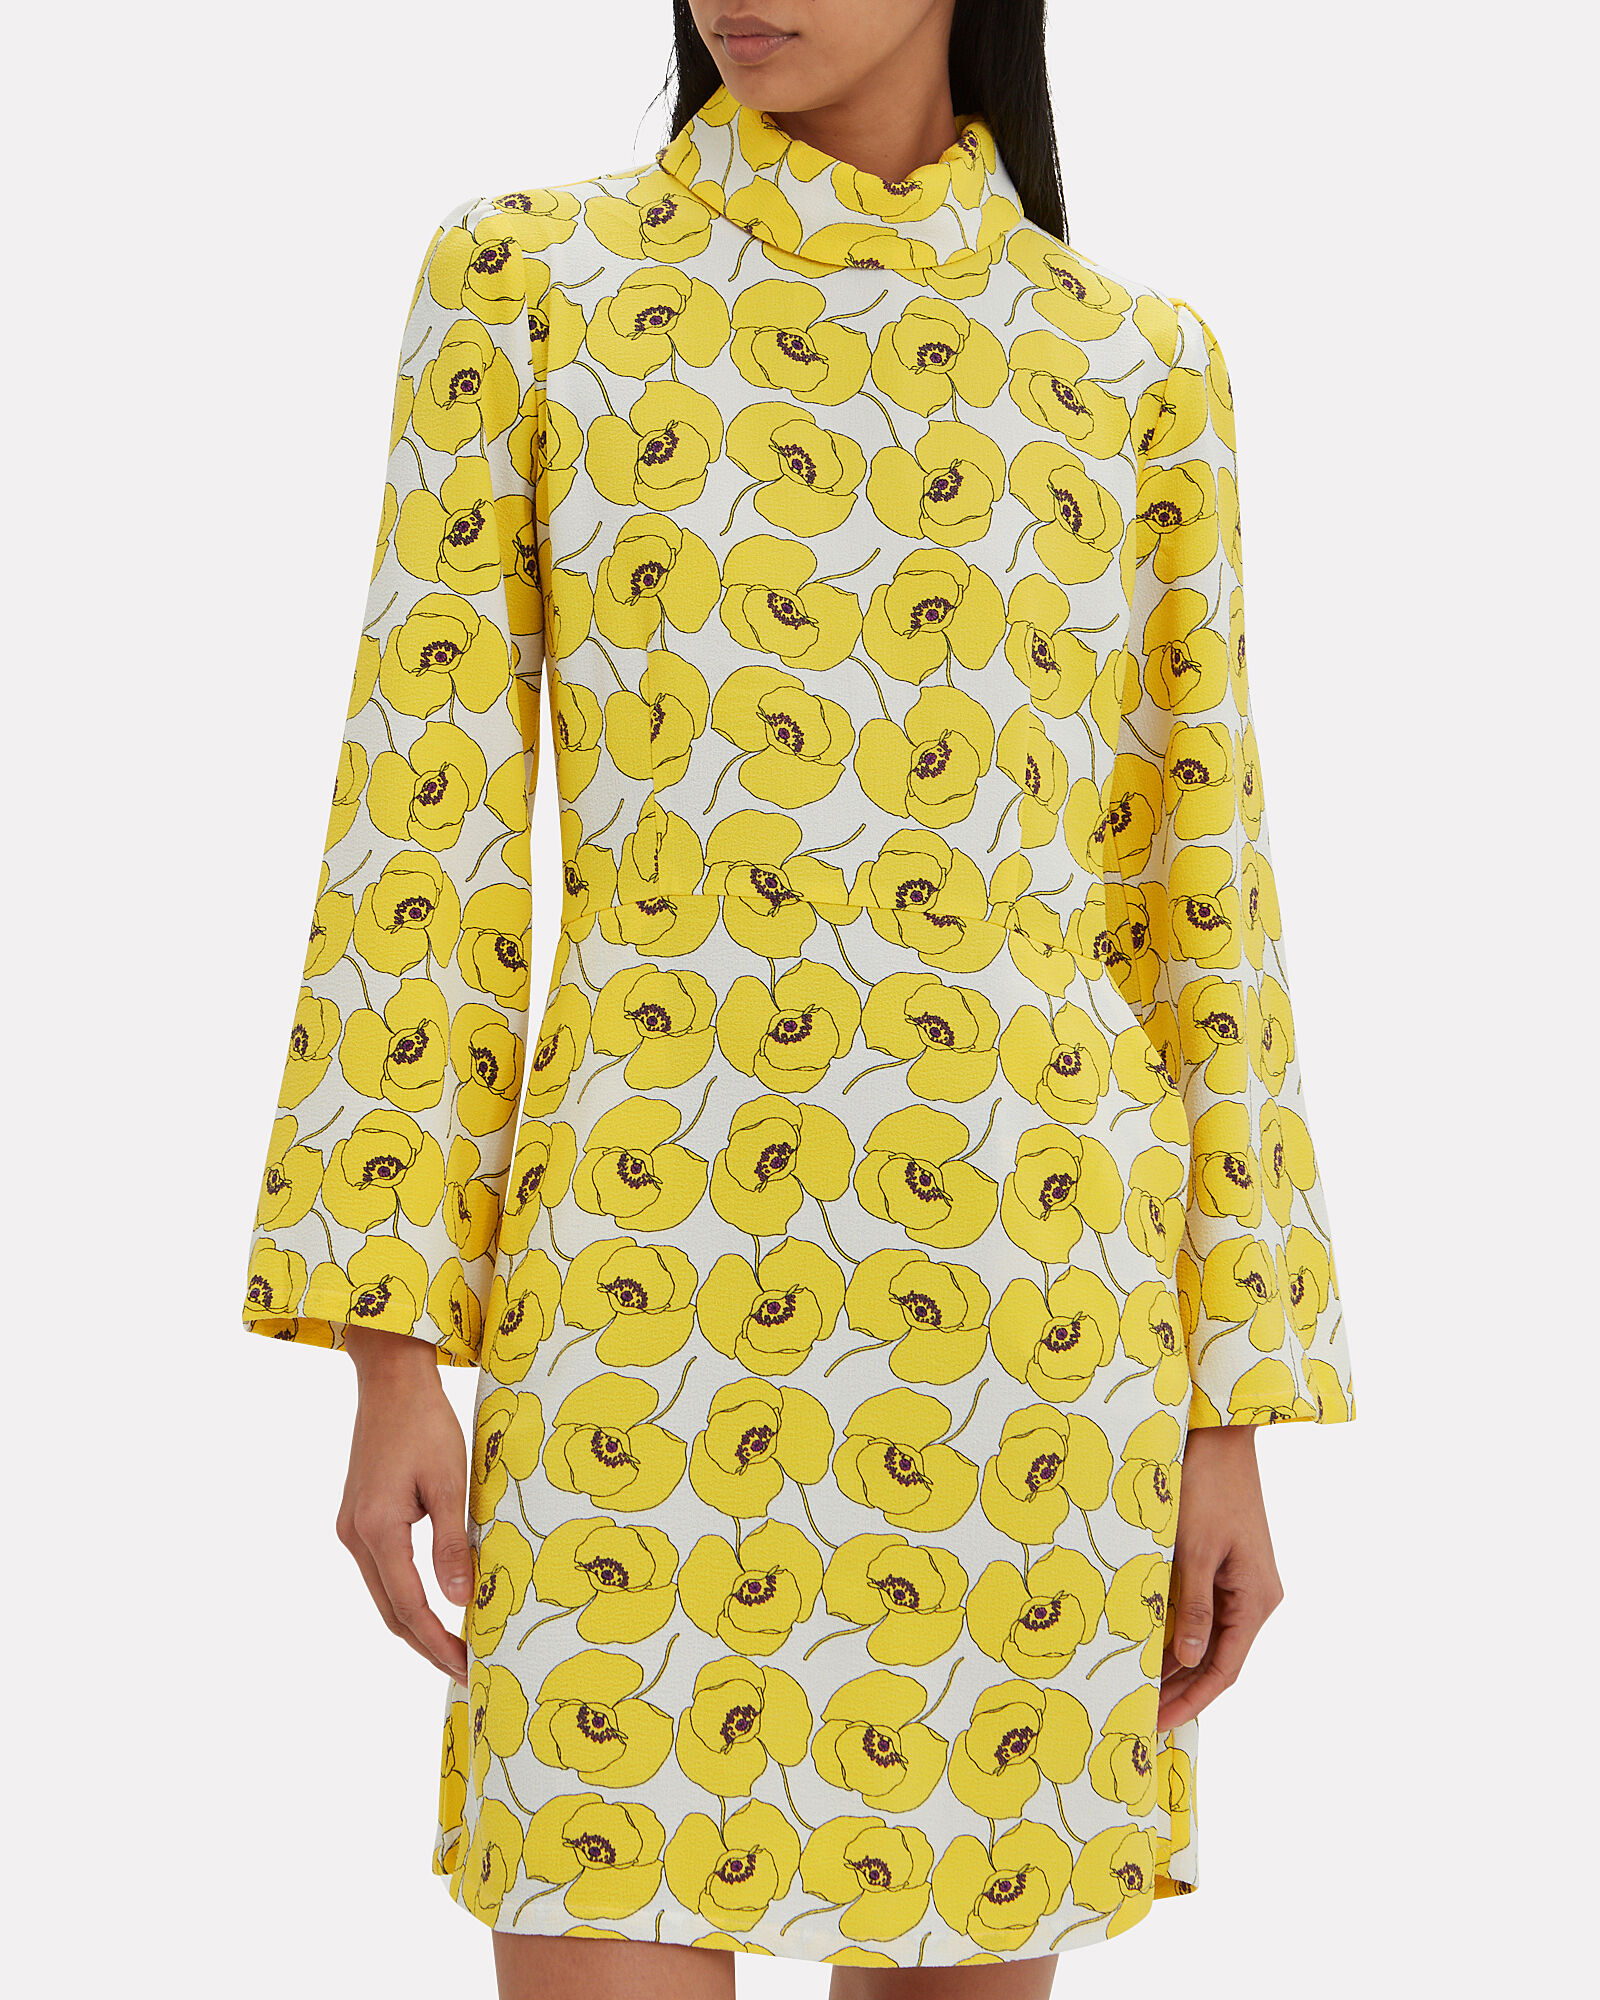 Mynte Yellow Floral Dress, YELLOW, hi-res